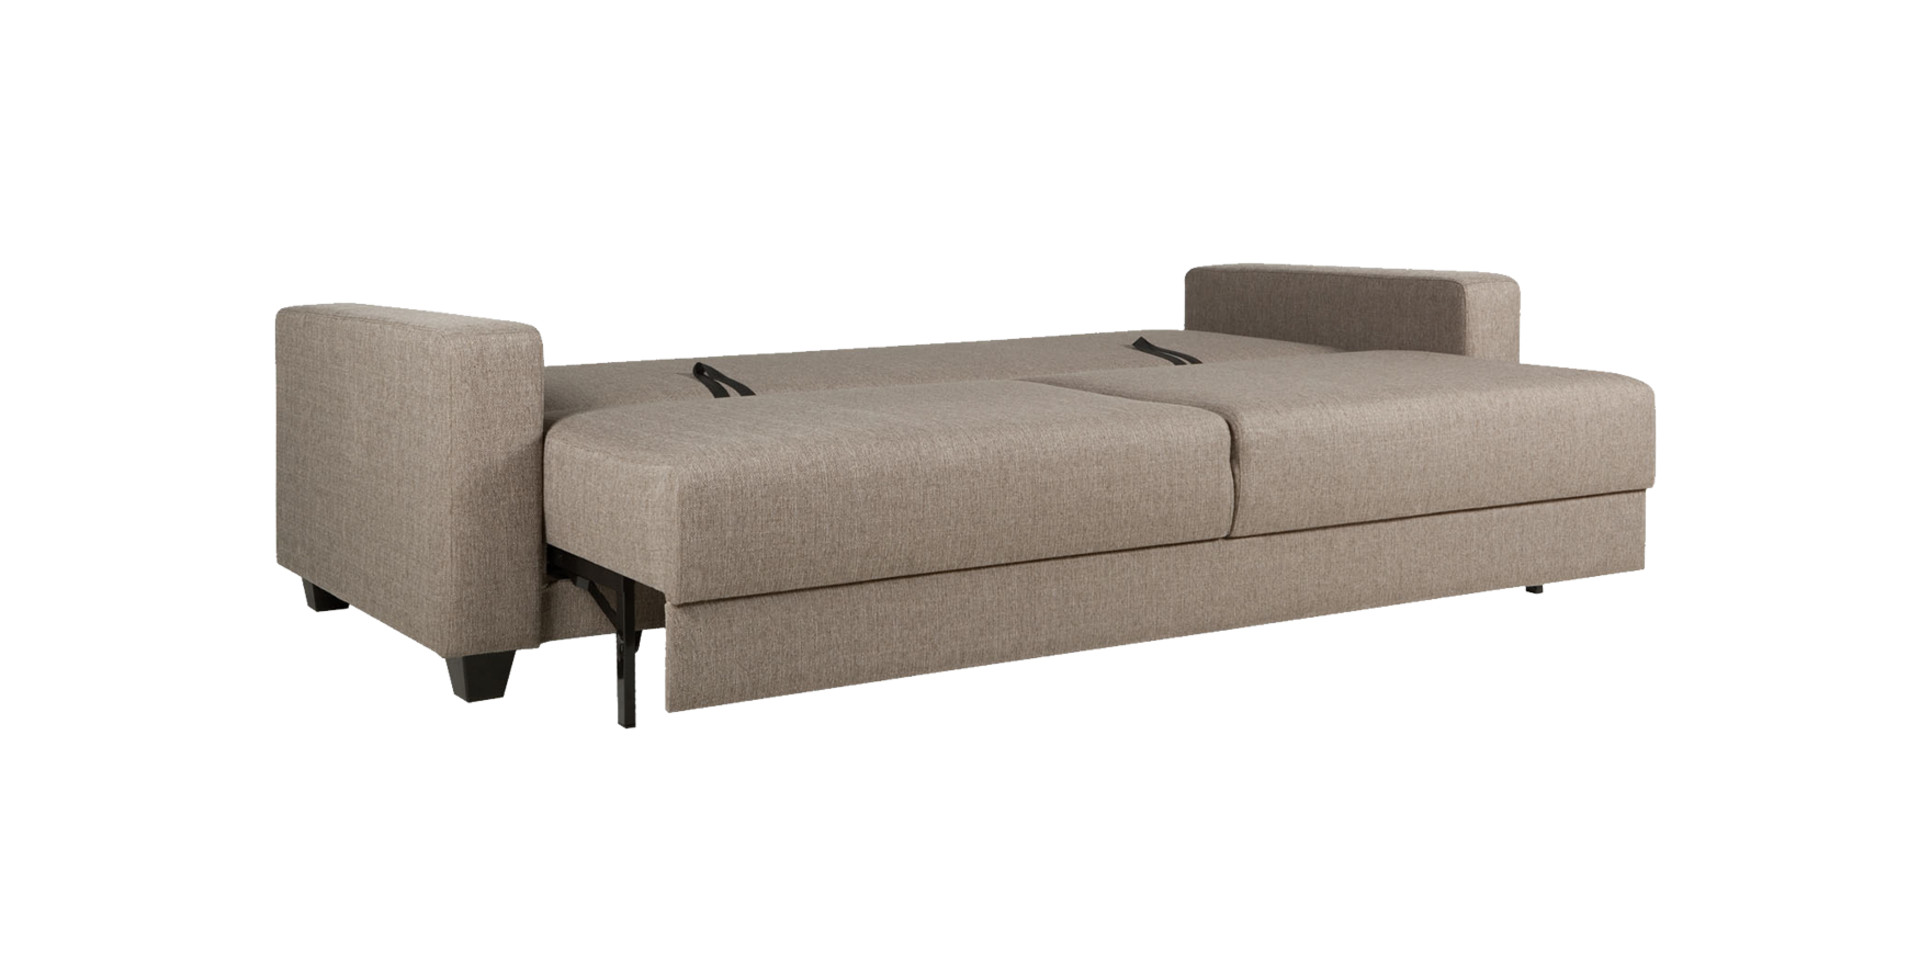 sits-bari-canape-convertible-sofa_bed_cedros3_light_brown_7